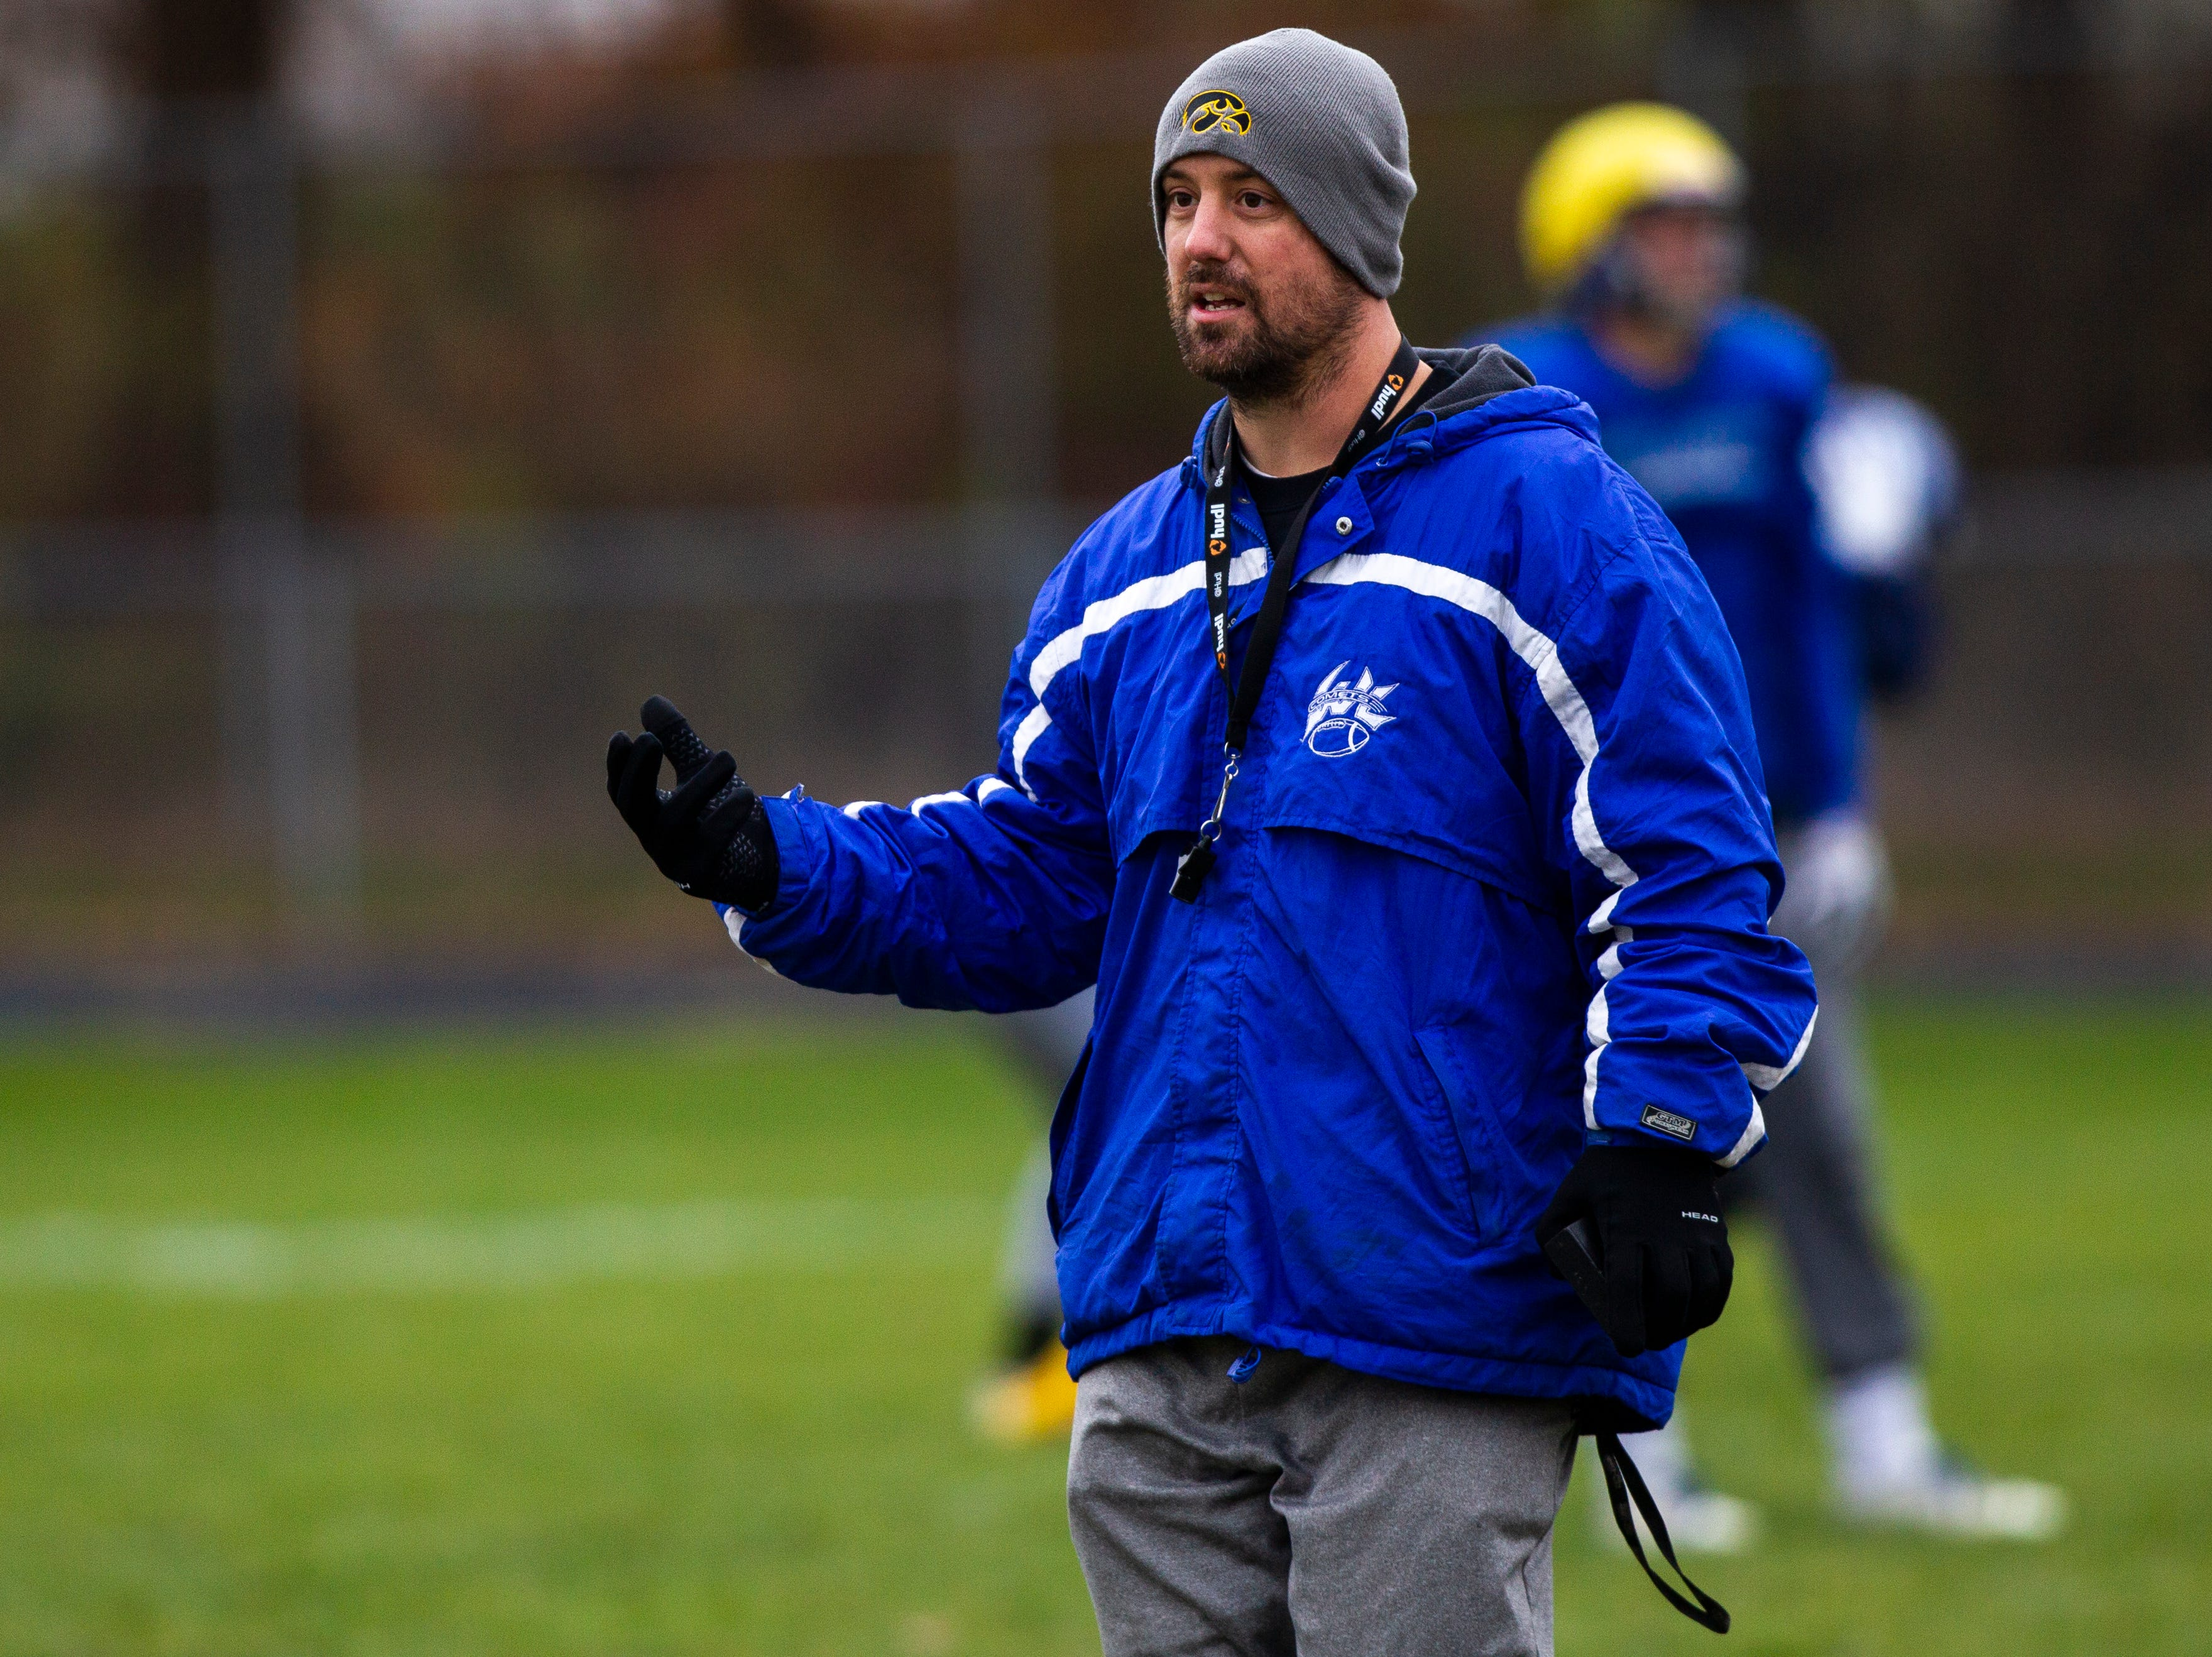 West Liberty head coach Jason Iske calls out to players during a football practice on Thursday, Nov. 8, 2018, at Memorial Field in West Liberty.